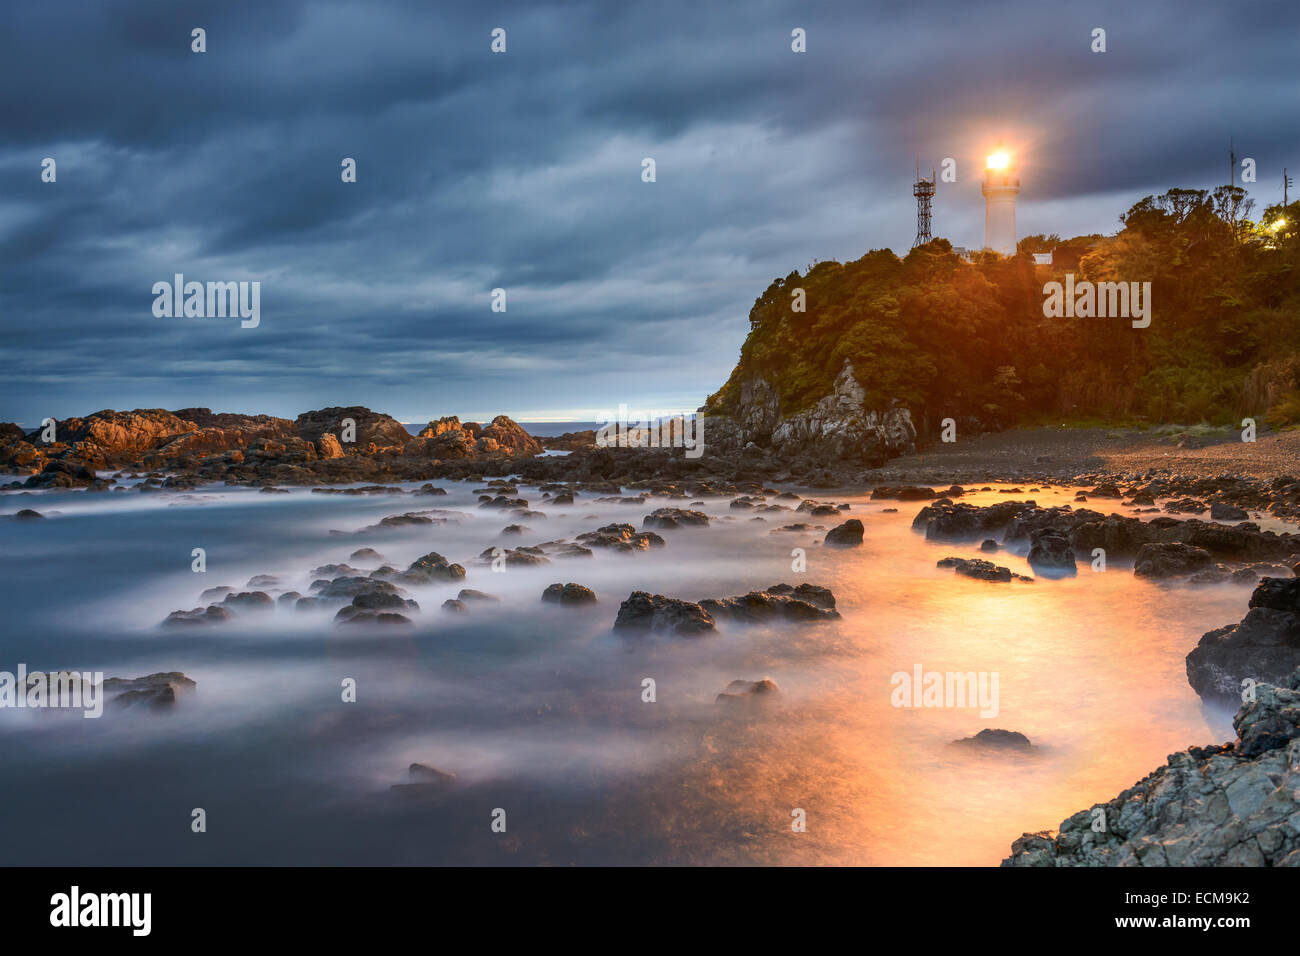 Kushimoto, Japan at Shionomisaki Cape, the most southern point of the main island of Honshu. - Stock Image